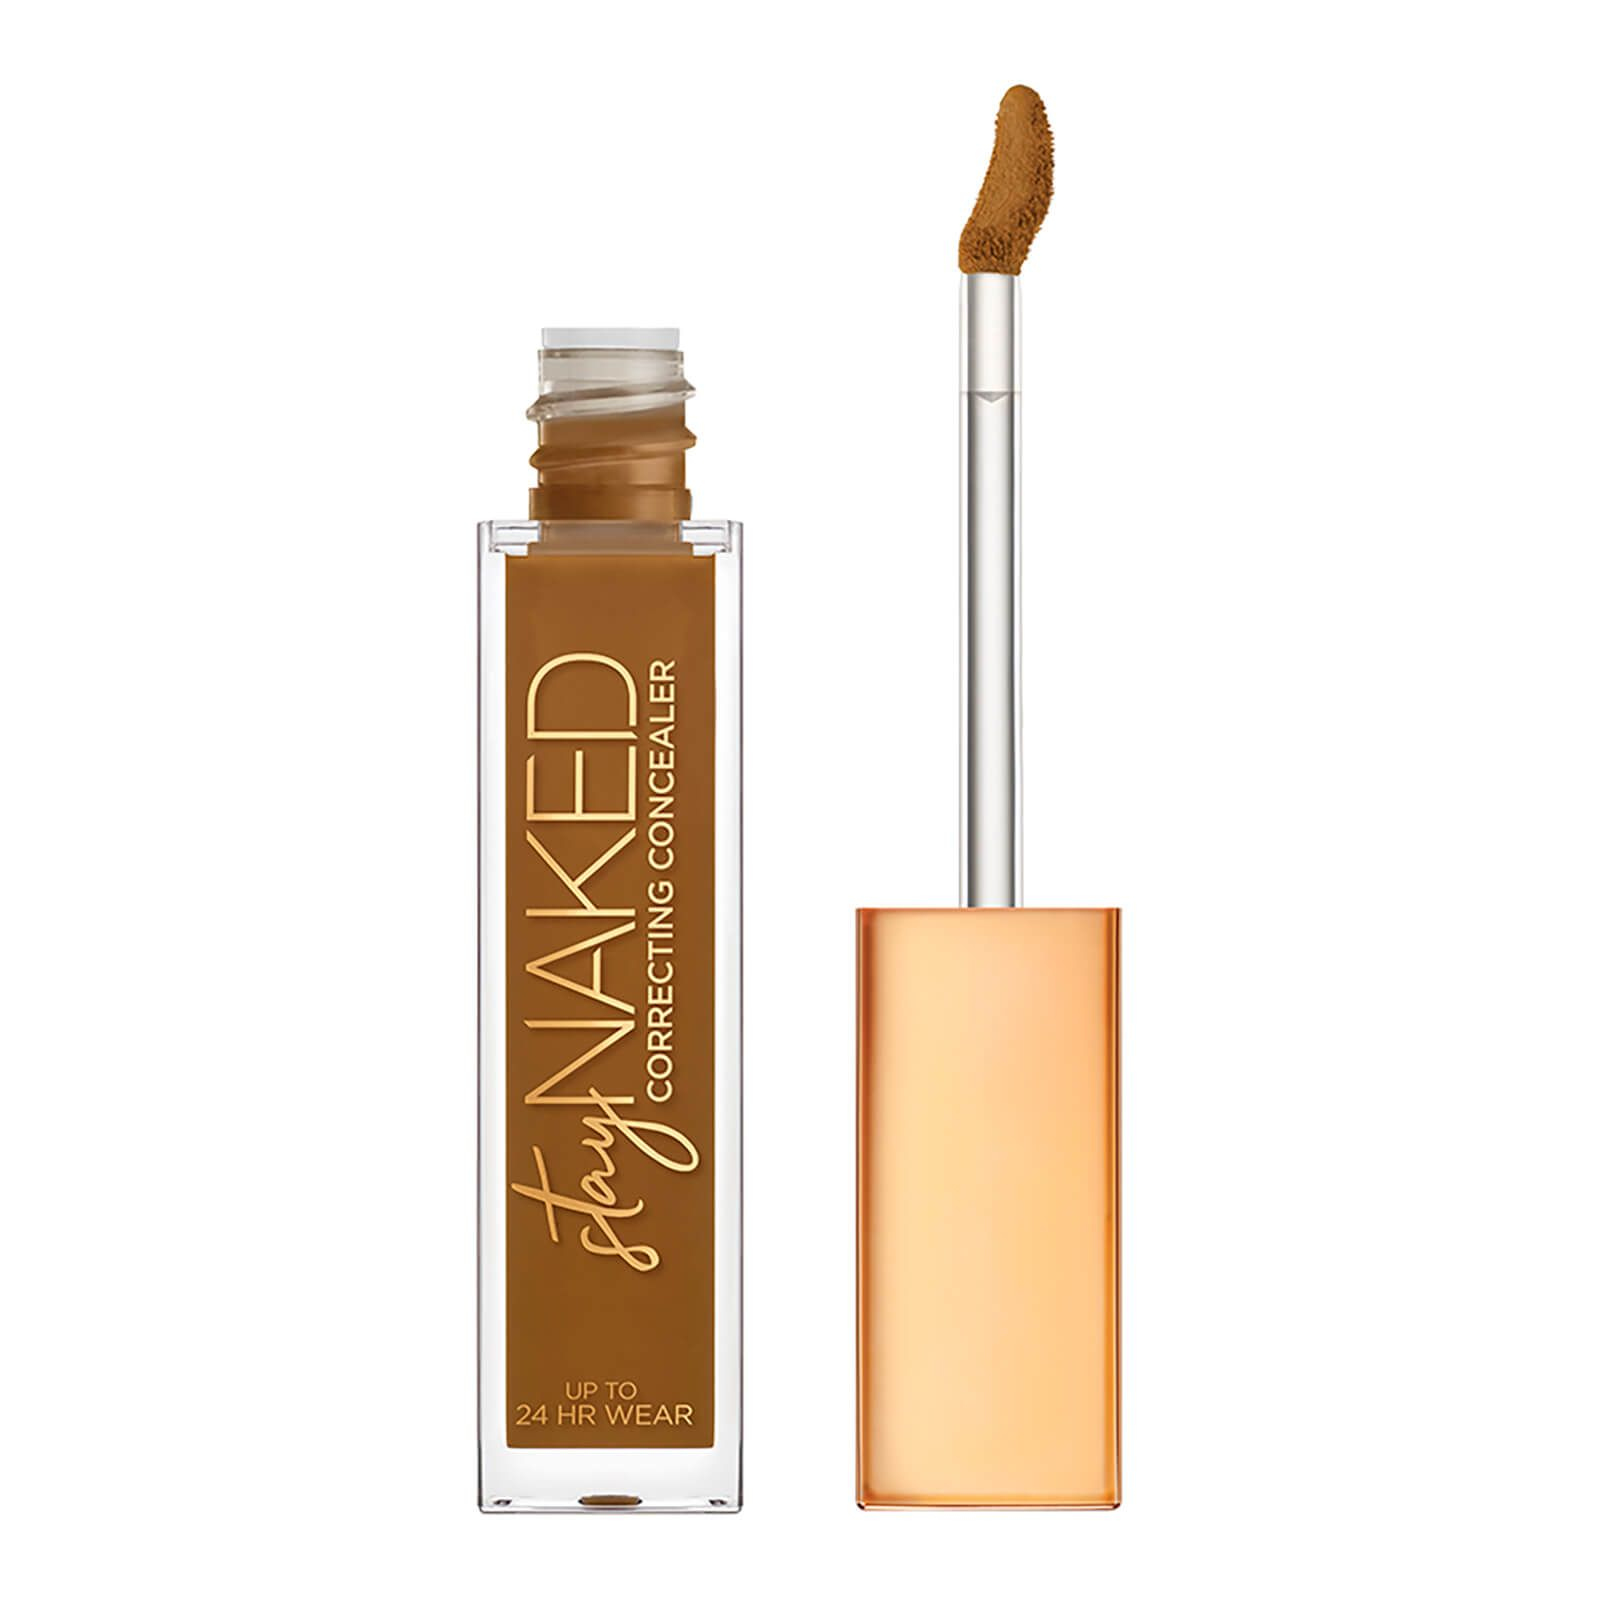 My Celebrity Life – Urban Decay Stay Naked Concealer